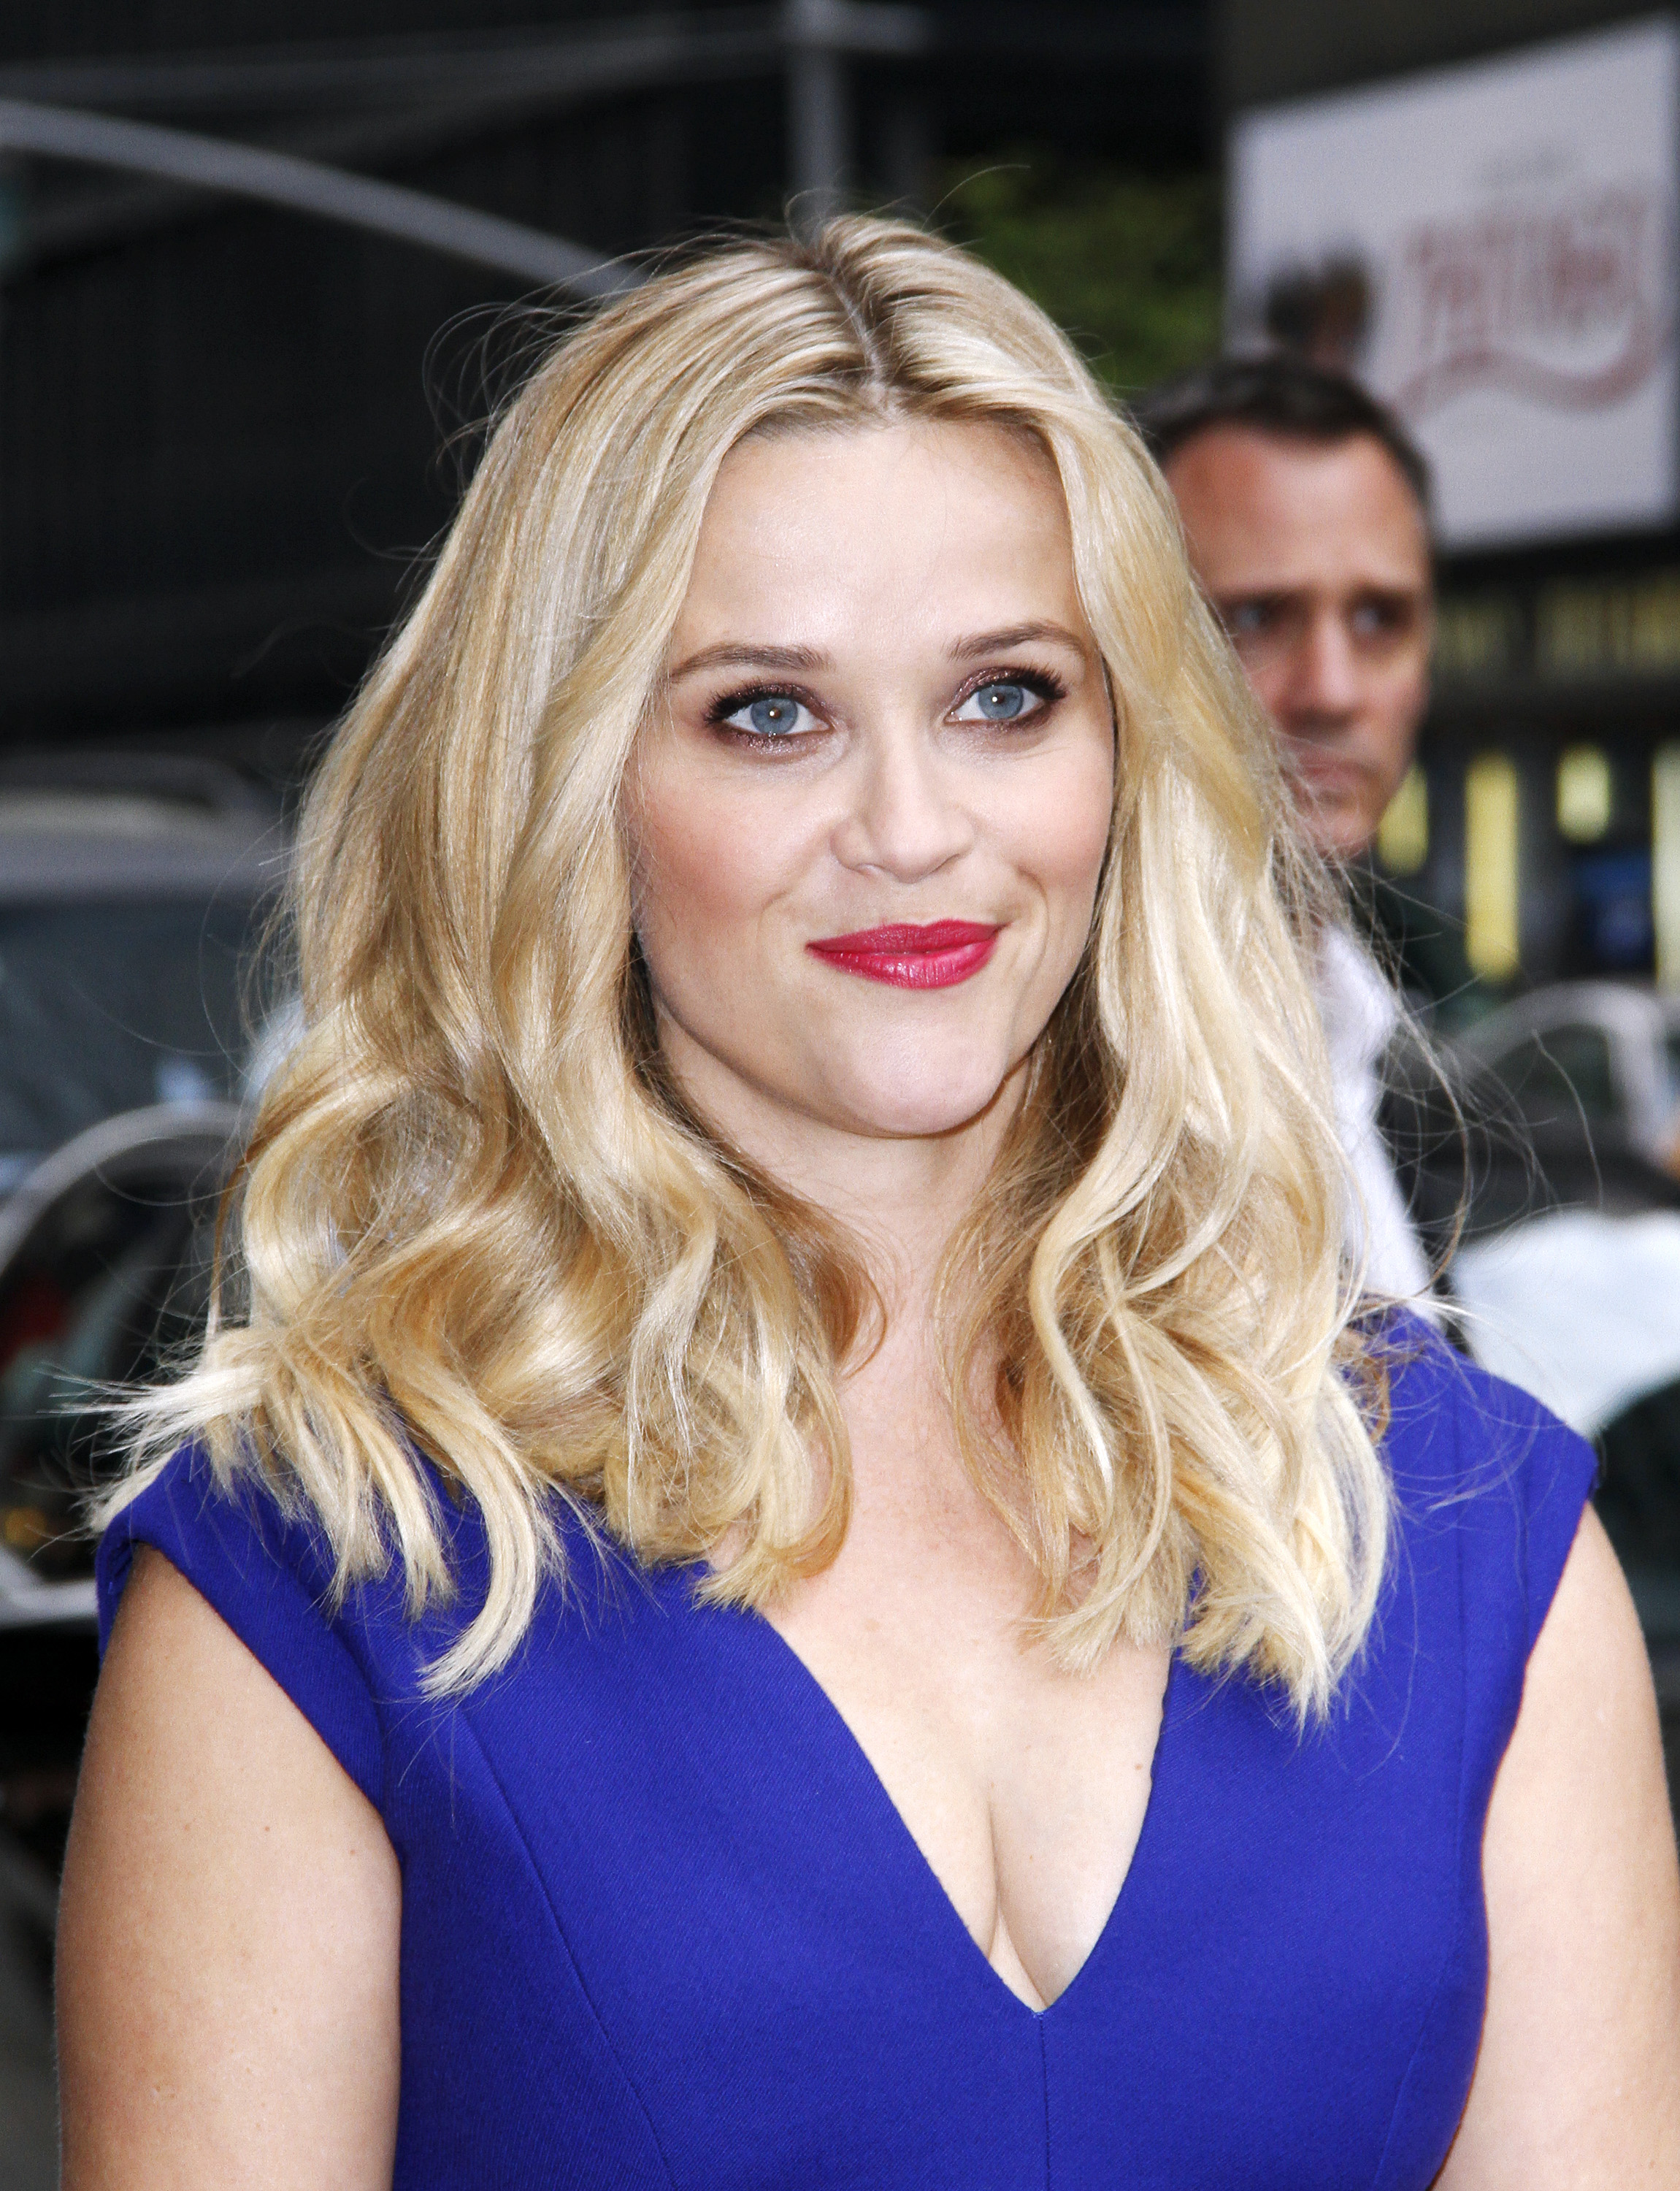 Reese Witherspoon visits  The Late Show with David Letterman  at the Ed Sullivan Theater on May 5, 2015 in New York City.